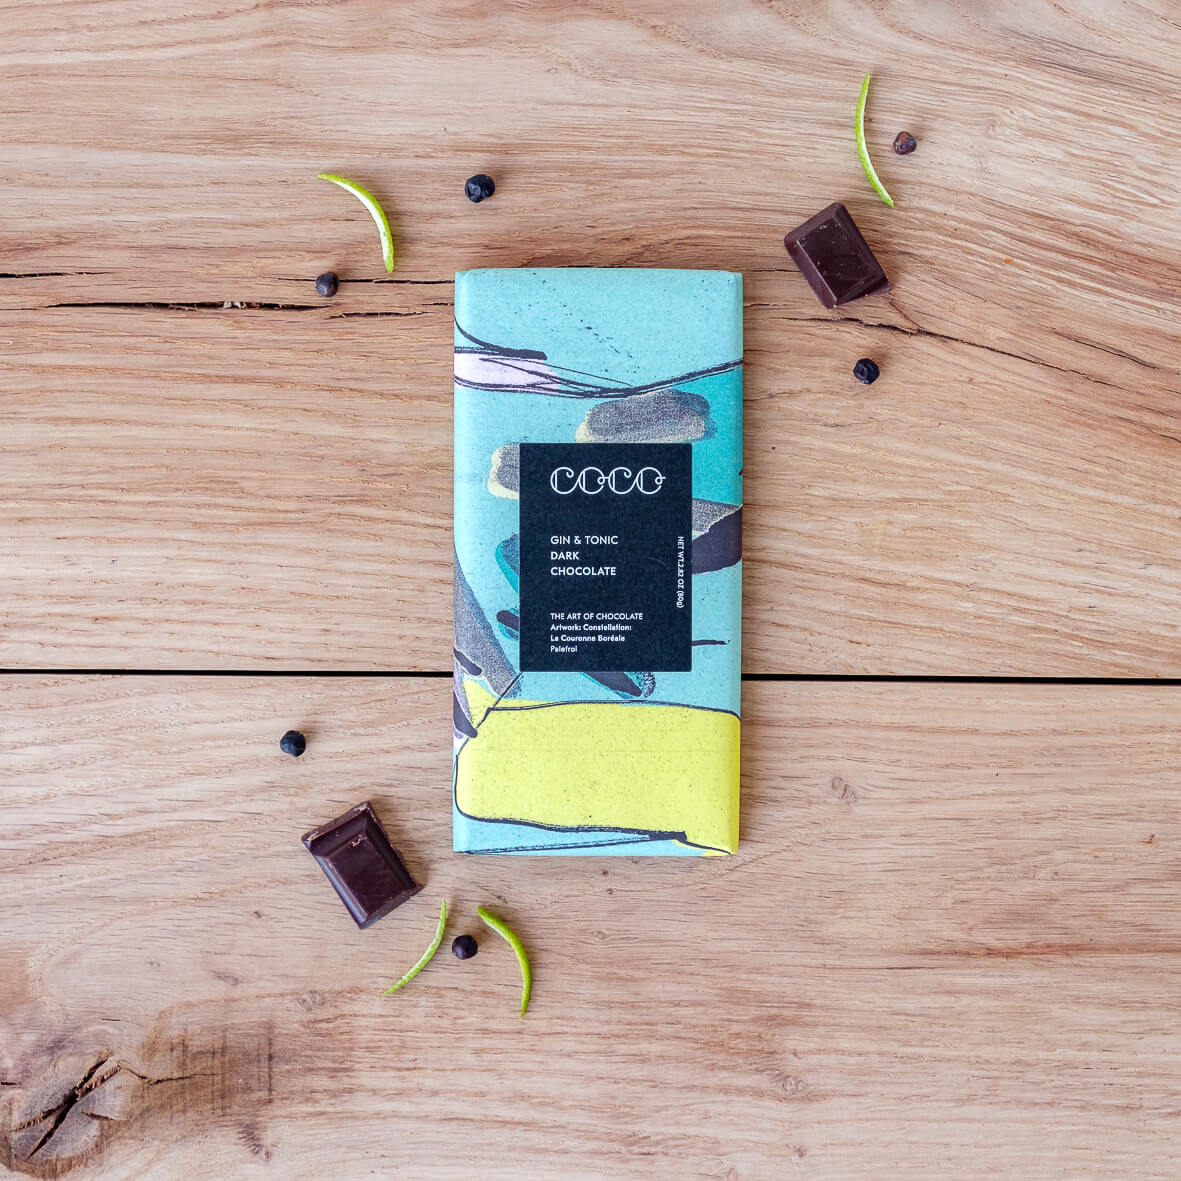 productfoto Anna Geets - more than a packshot